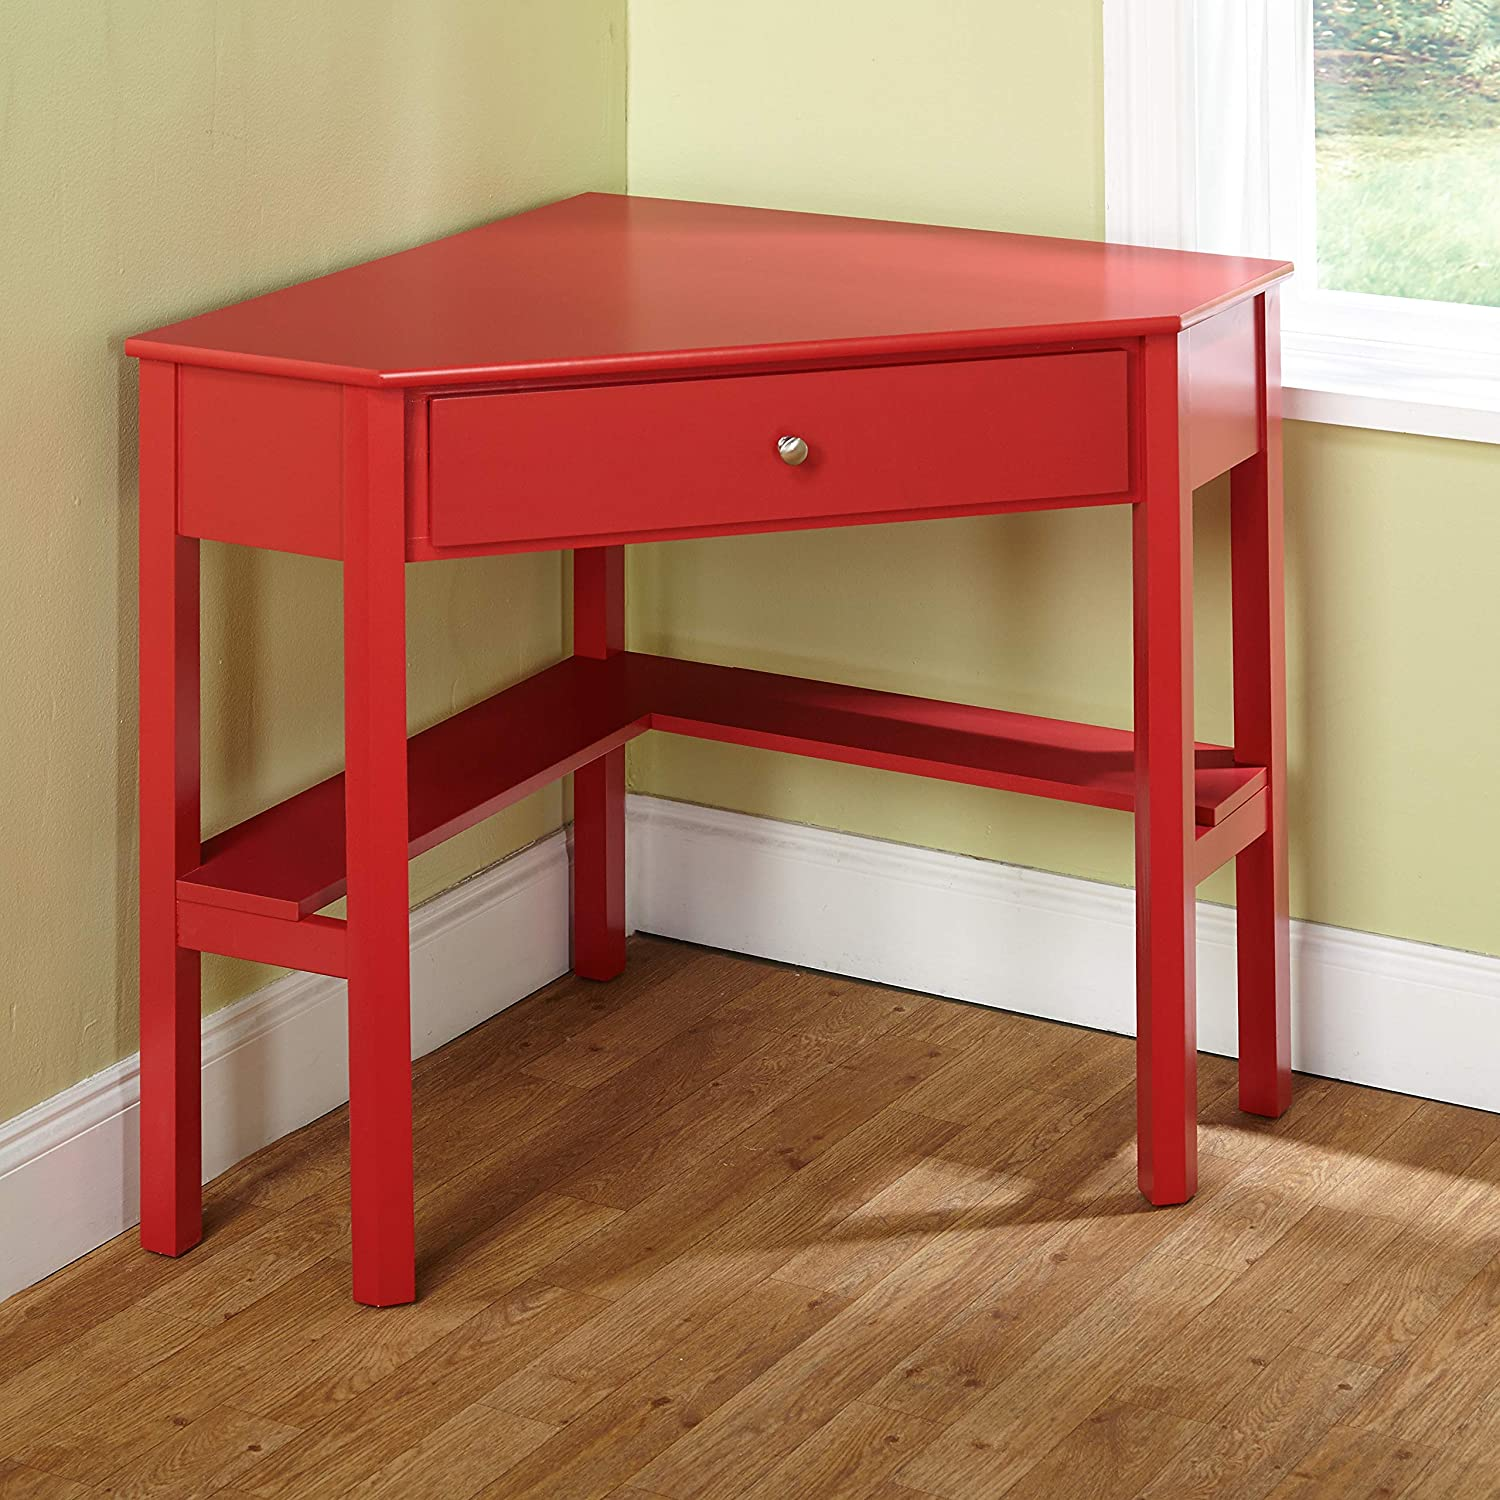 Target Marketing Systems Ellen Corner Desk with One Drawer and One Storage Shelf, Red